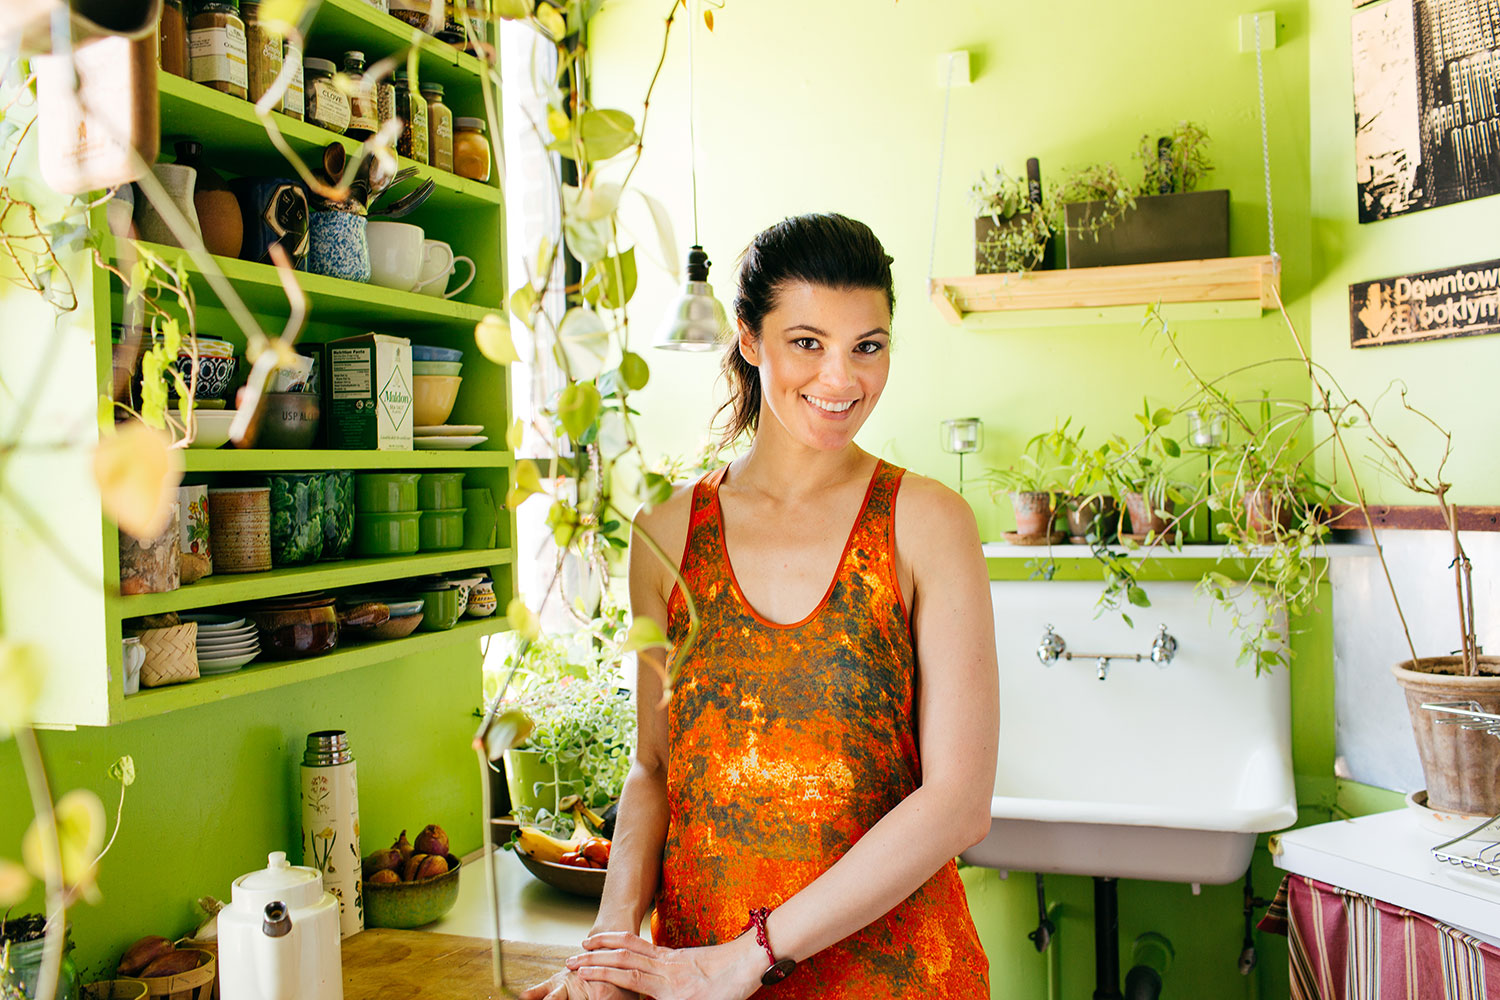 Summer-Rayne-Oakes-Plant-Filled-Apartment-in-Williamsburg-Brooklyn-portrait